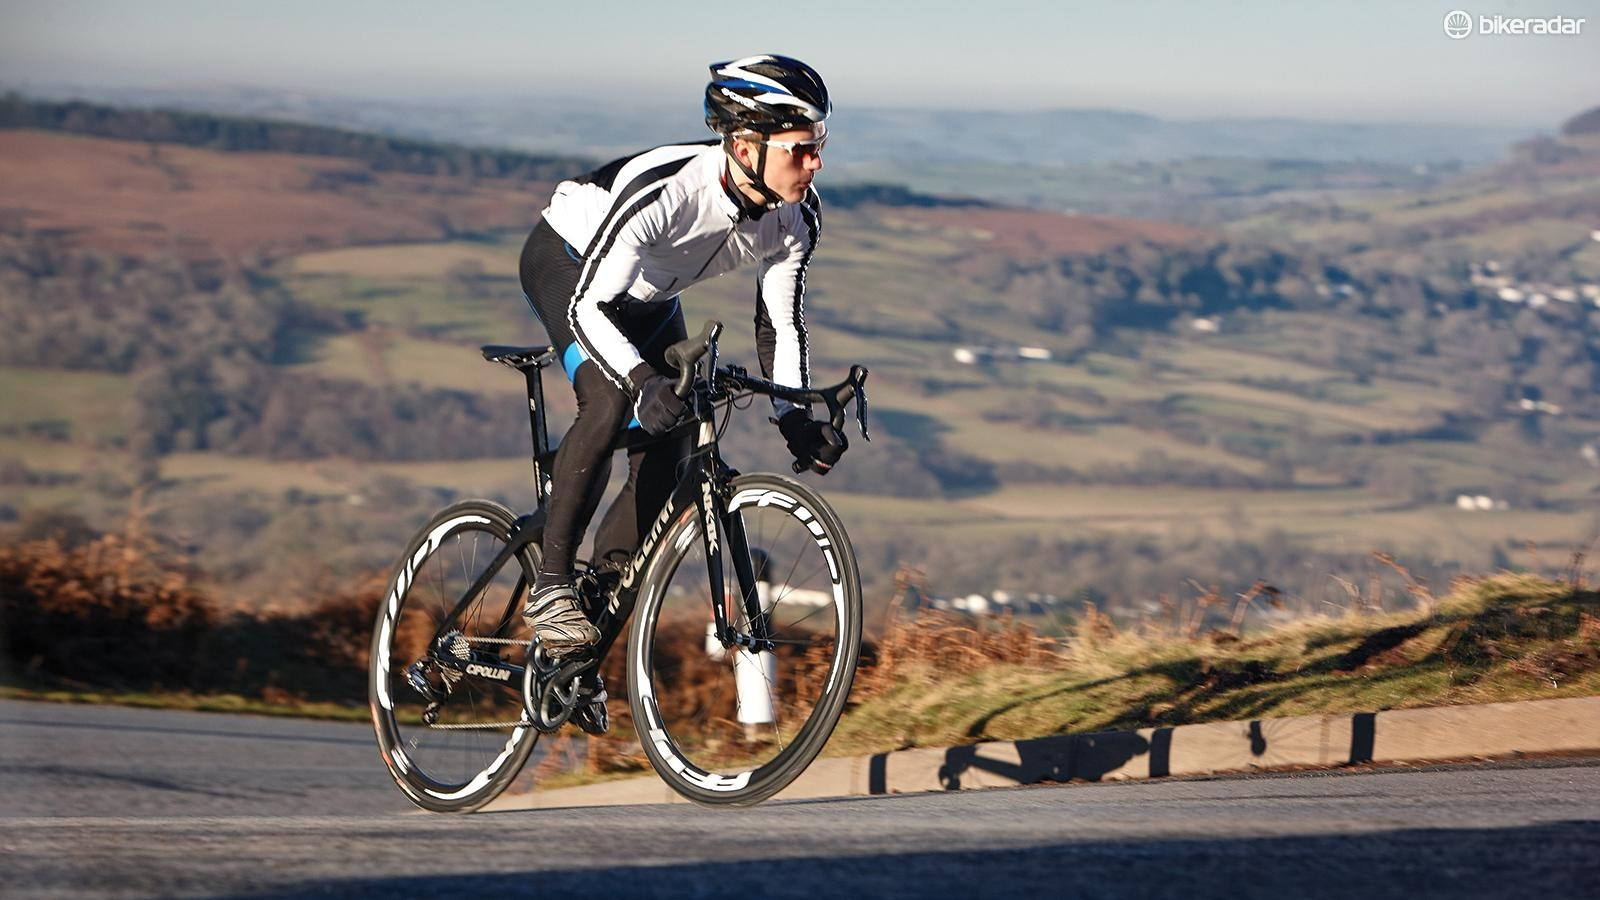 Combine long fat-burning rides with sessions focussed on hard efforts